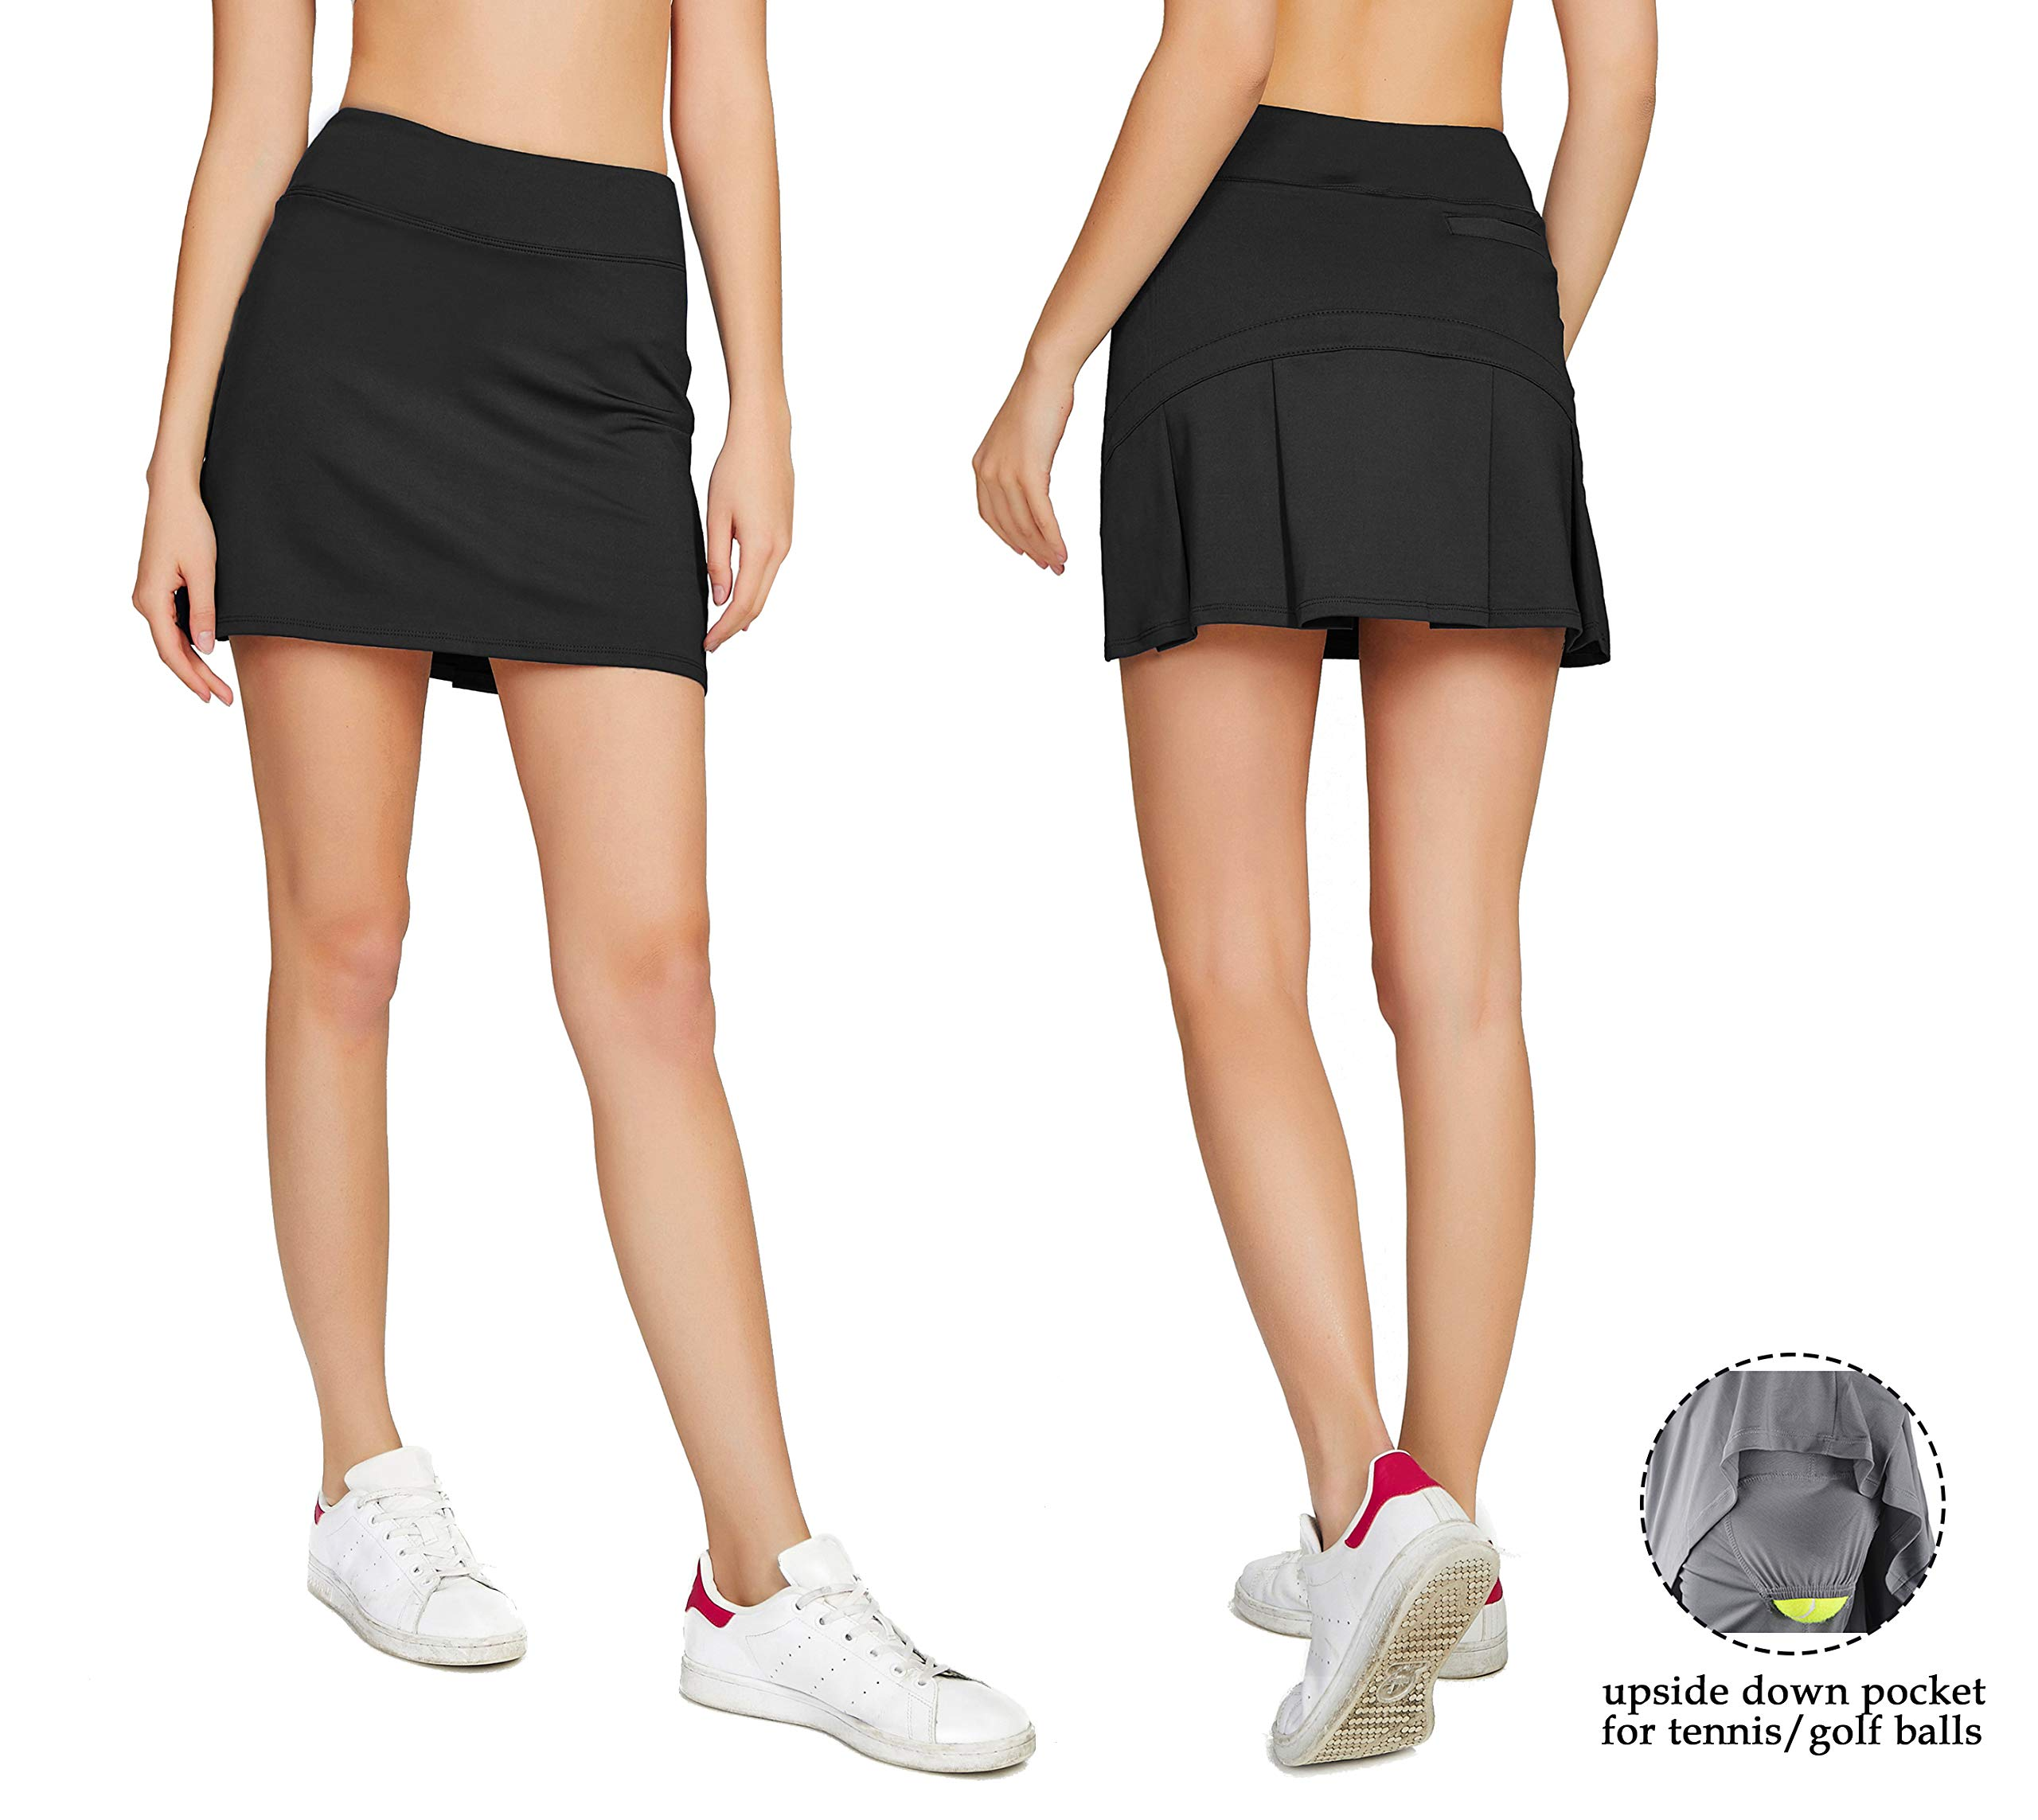 Cityoung Women's Casual Pleated Golf Skirt with Underneath Shorts Running Skortss black1